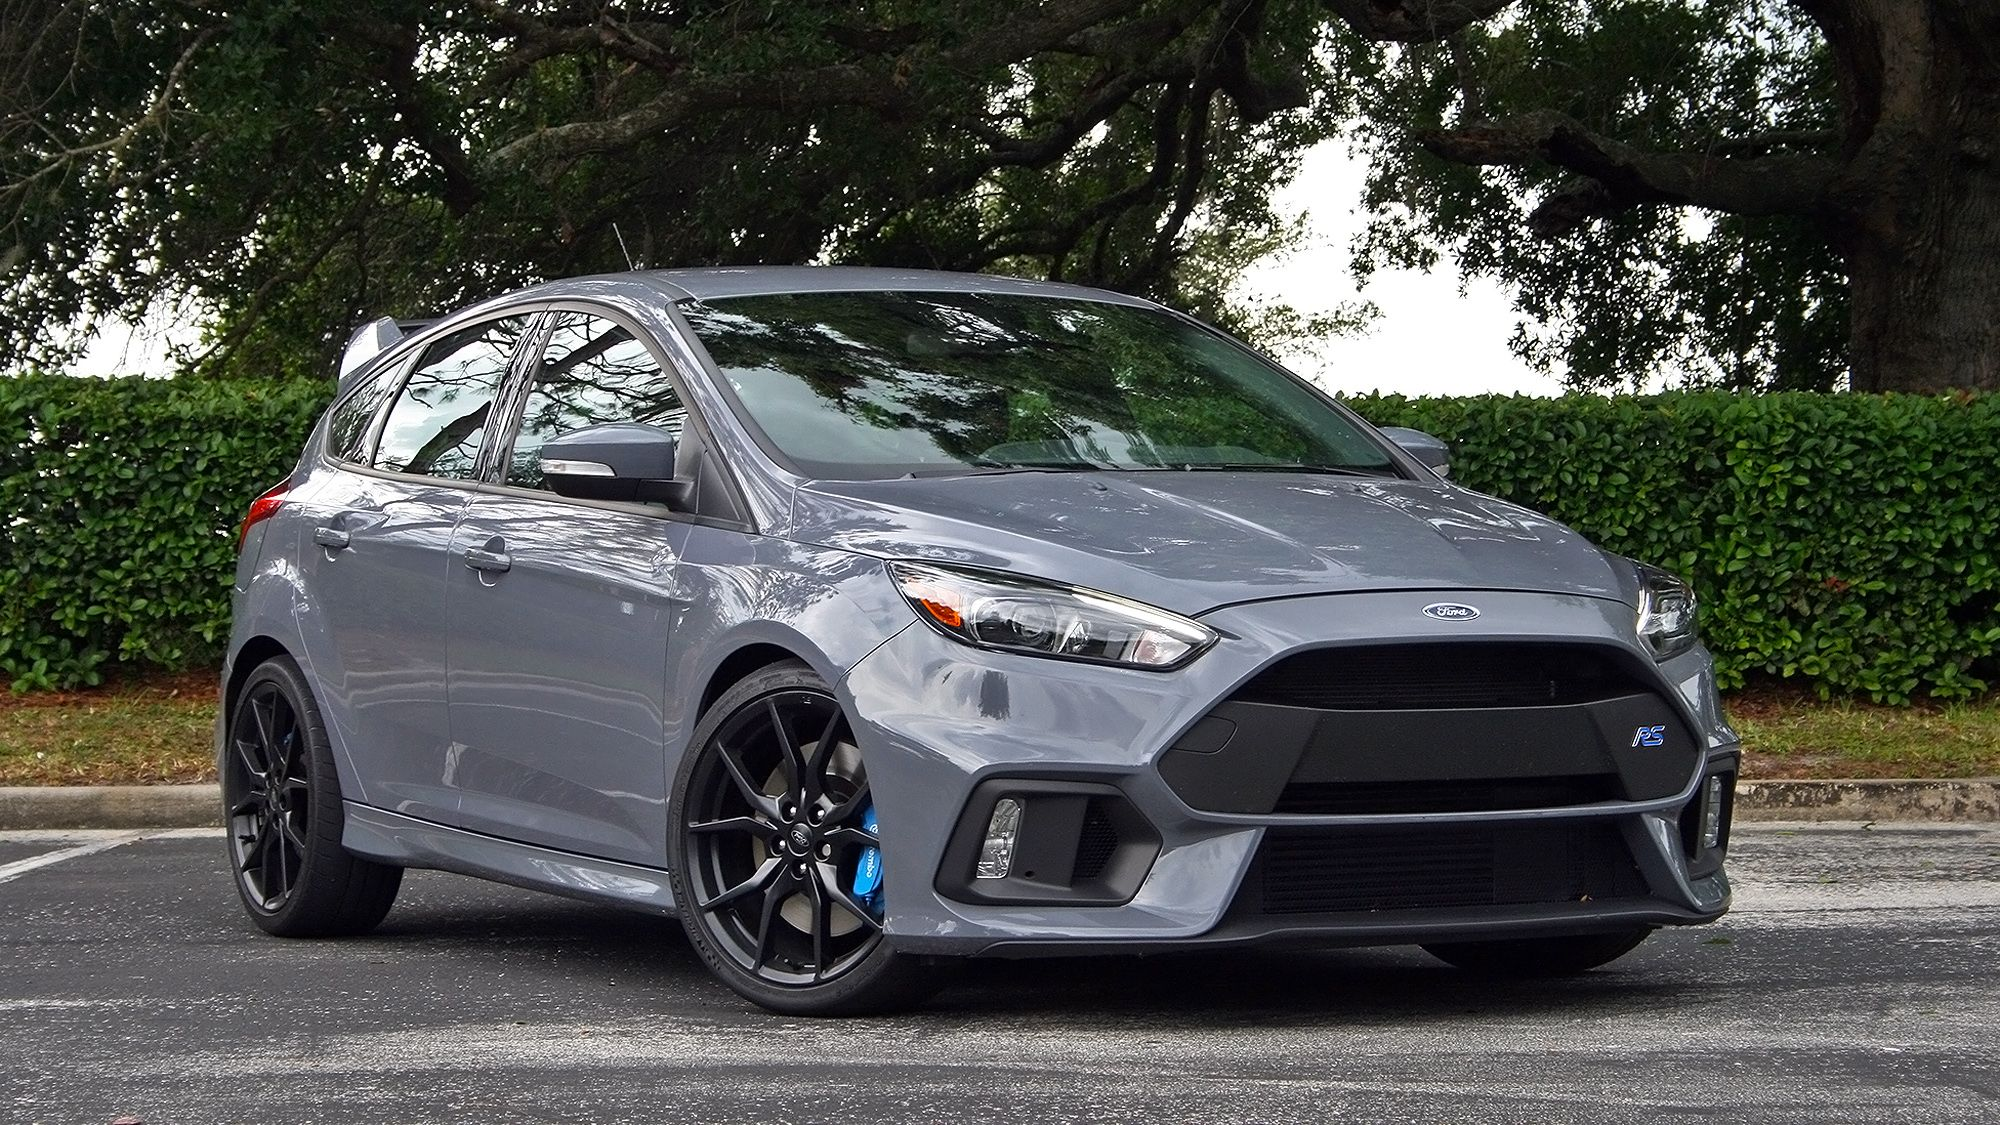 Ford Just Cancelled The Fourth Gen 2022 Focus Rs Top Speed In 2020 Ford Focus Rs Focus Rs Ford Focus